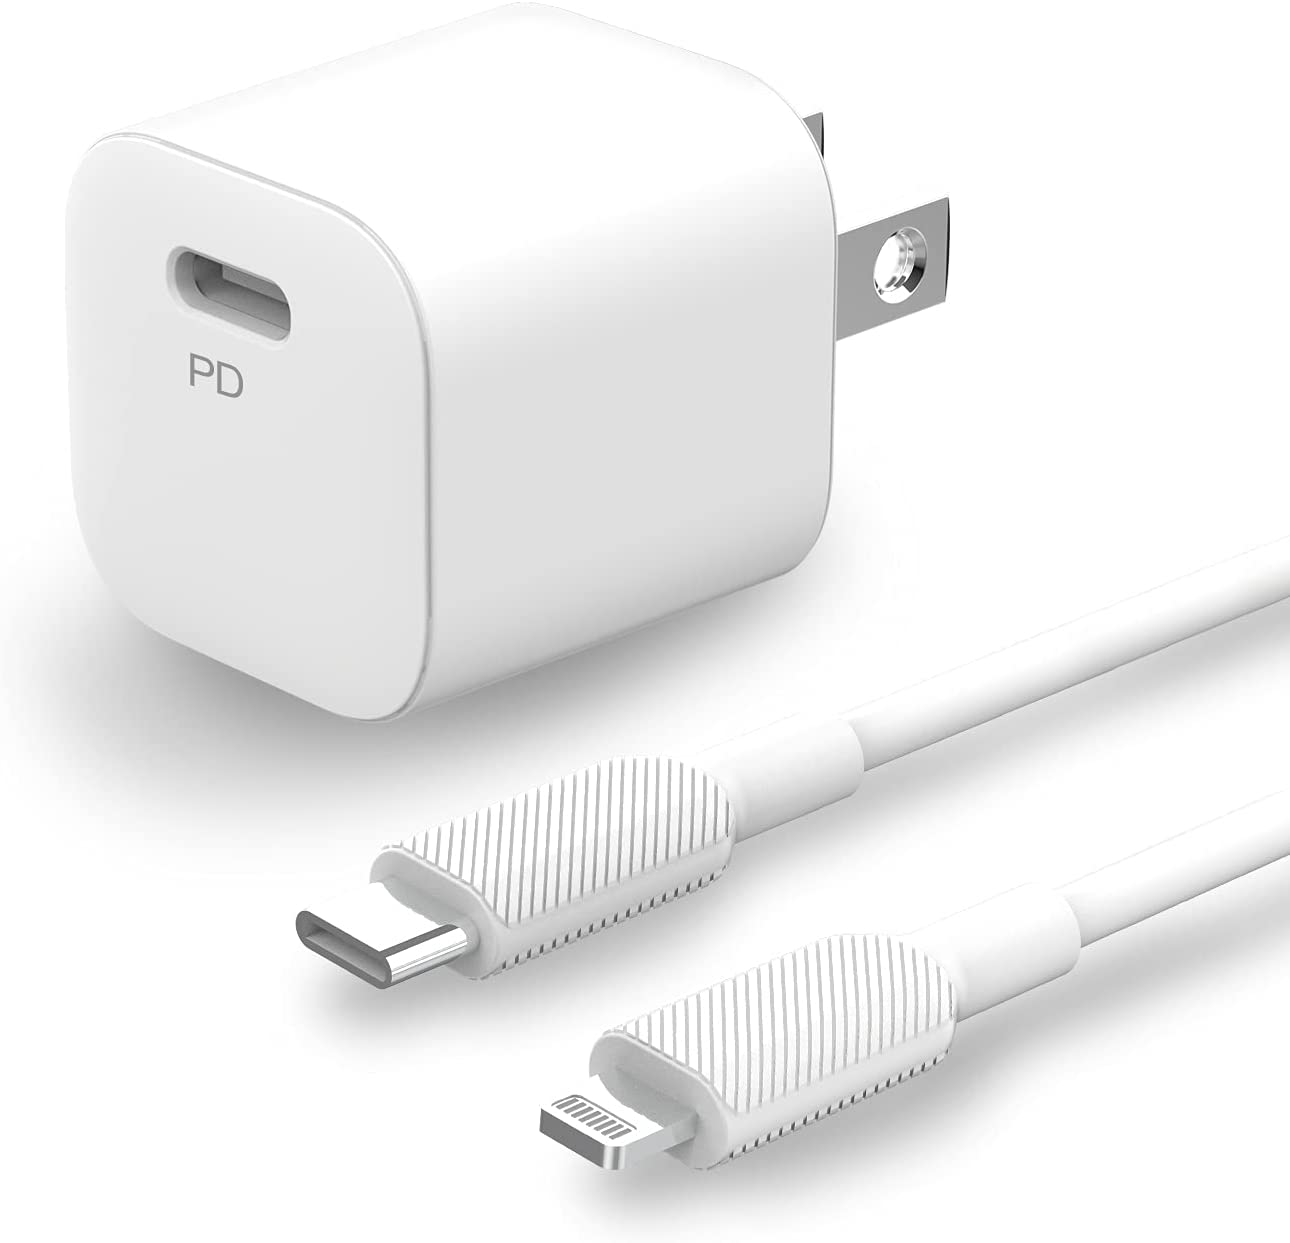 iPhone Charger [Apple MFi Certified] 20W iPhone Charger Block with 6ft Lightning Cable C Cord, USB C Wall Charger Plug Type C Fast Lightning Chargers for iPhone 13/12/11/XS/XR/X/SE/iPad/AirPods Pro